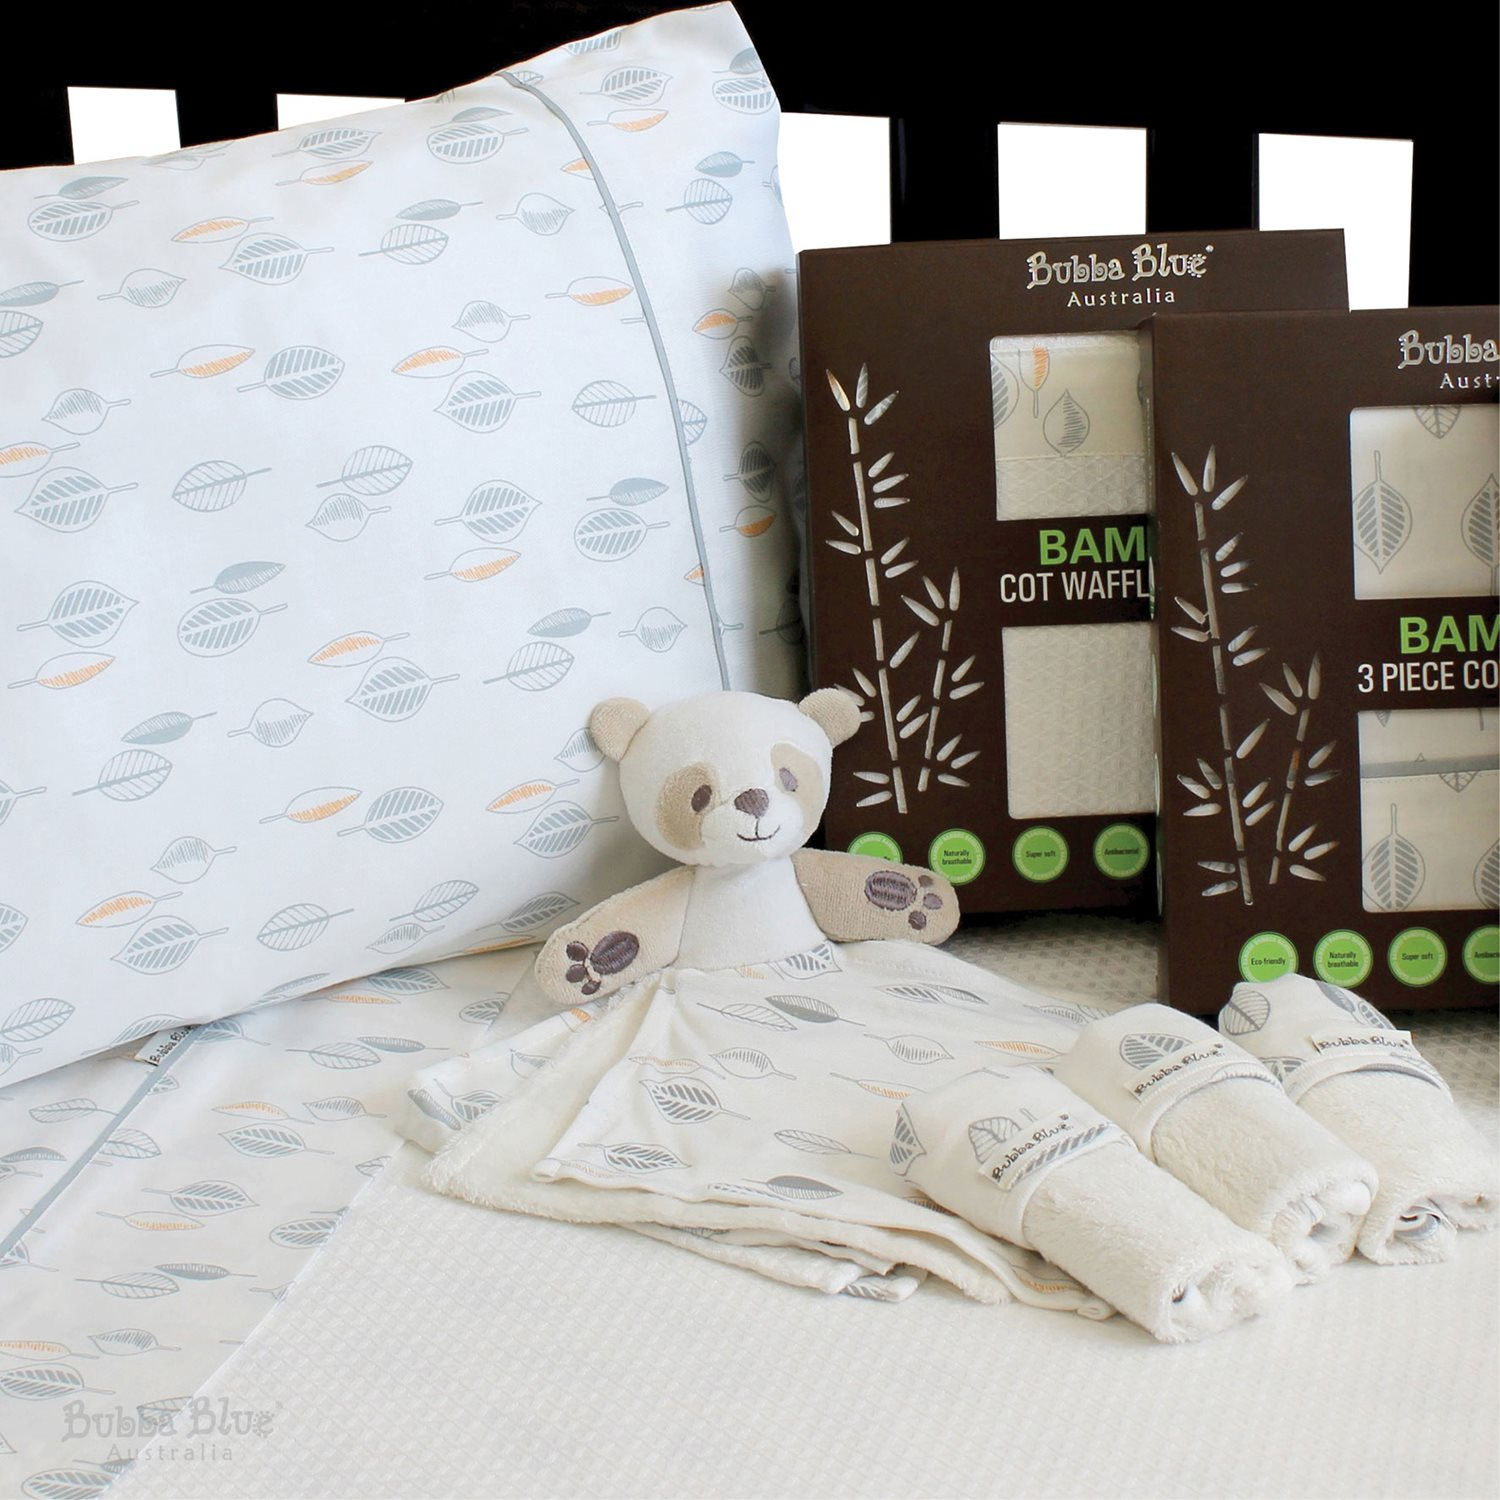 Nursery Bedding Blankets & Throws NEW Bubba Blue Bamboo Cot Sheet Set 3pce